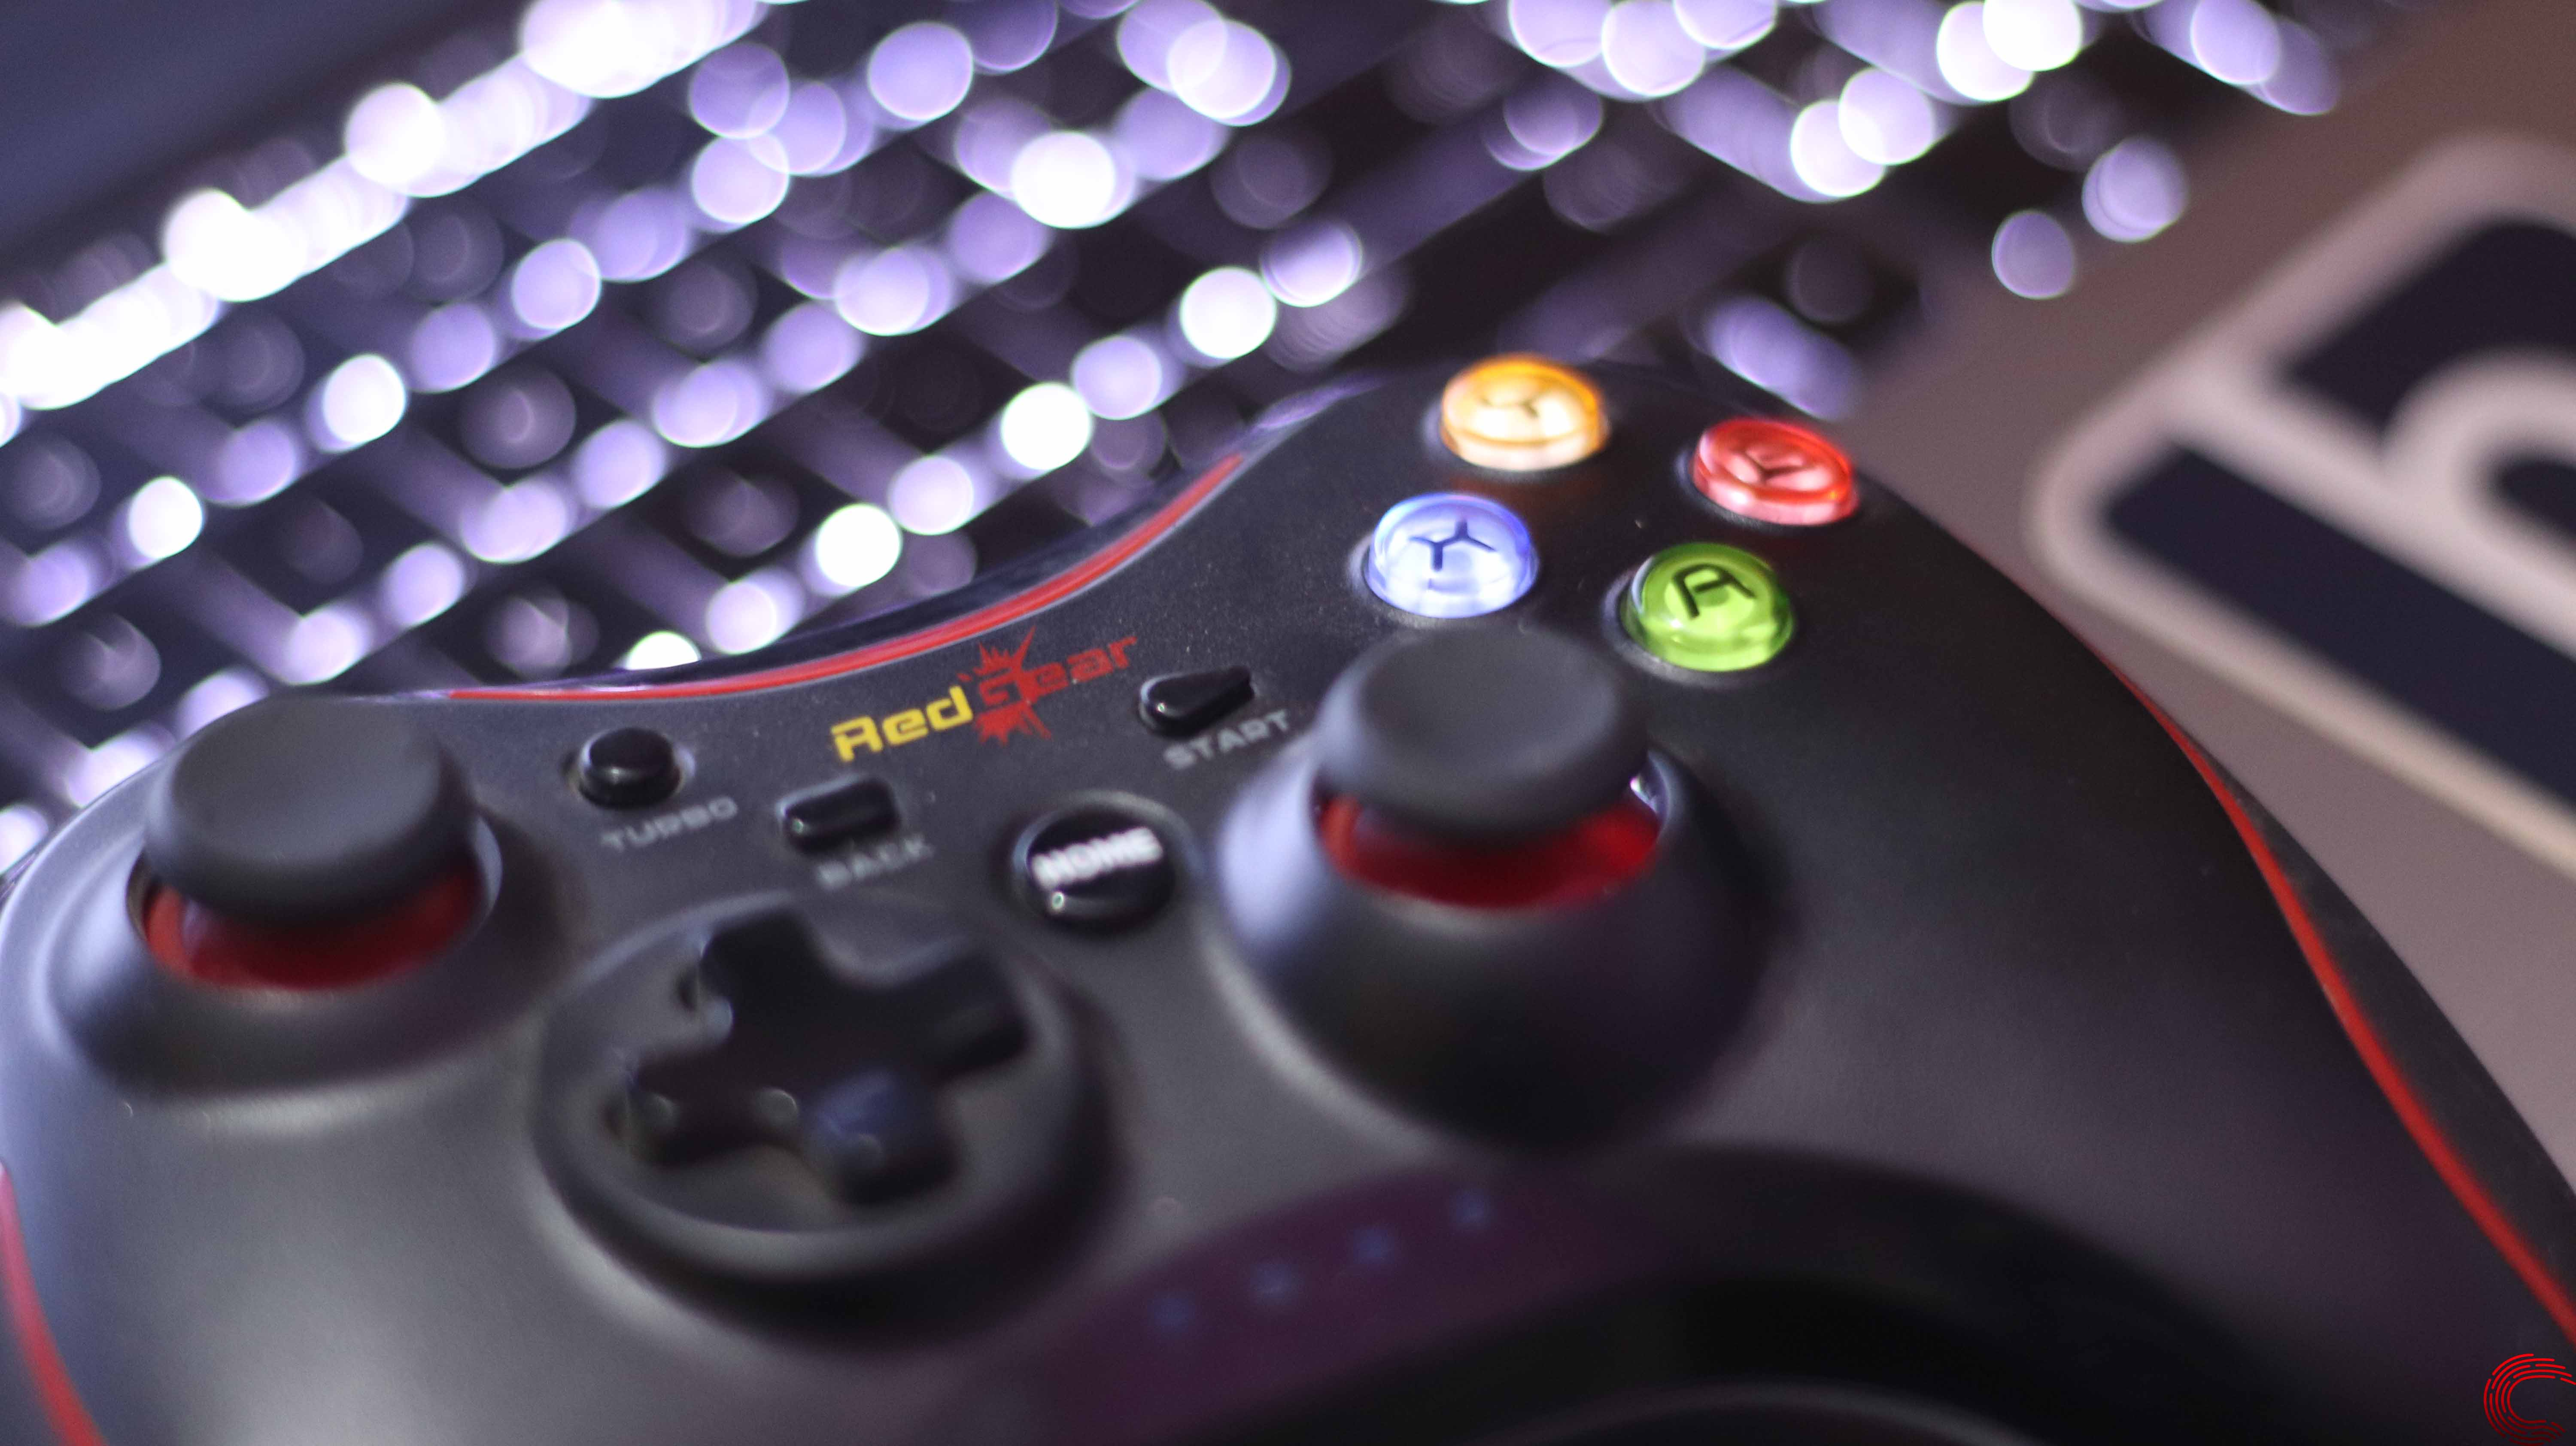 RedGear Pro Wireless gamepad review: Value for money?